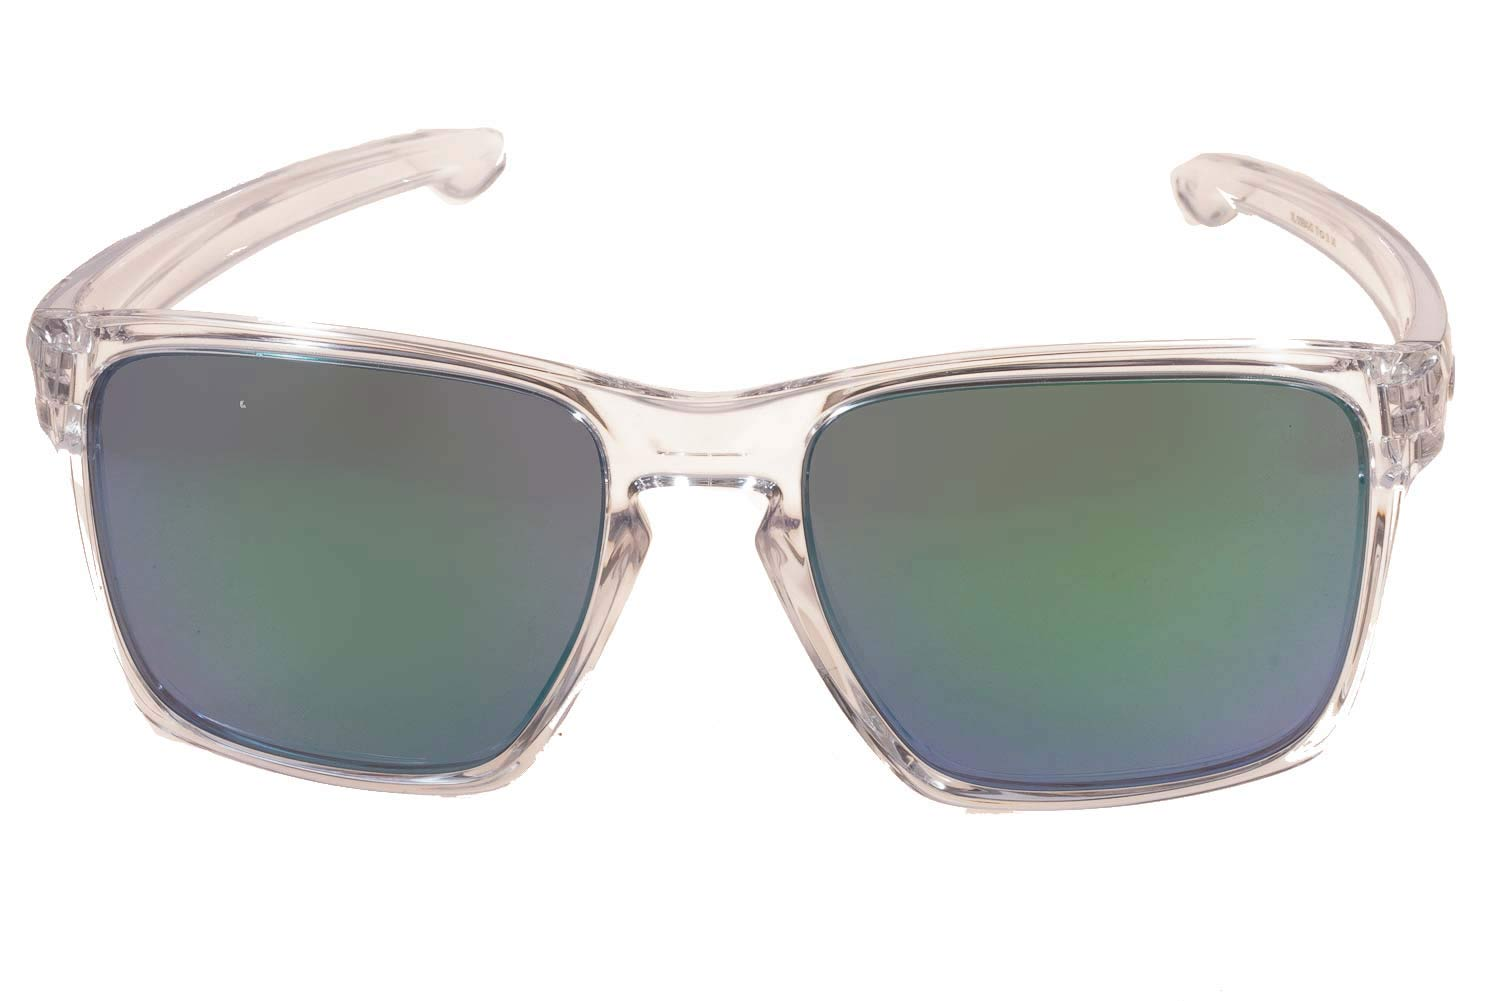 oakley clear sunglasses i1cc  oakley clear sunglasses